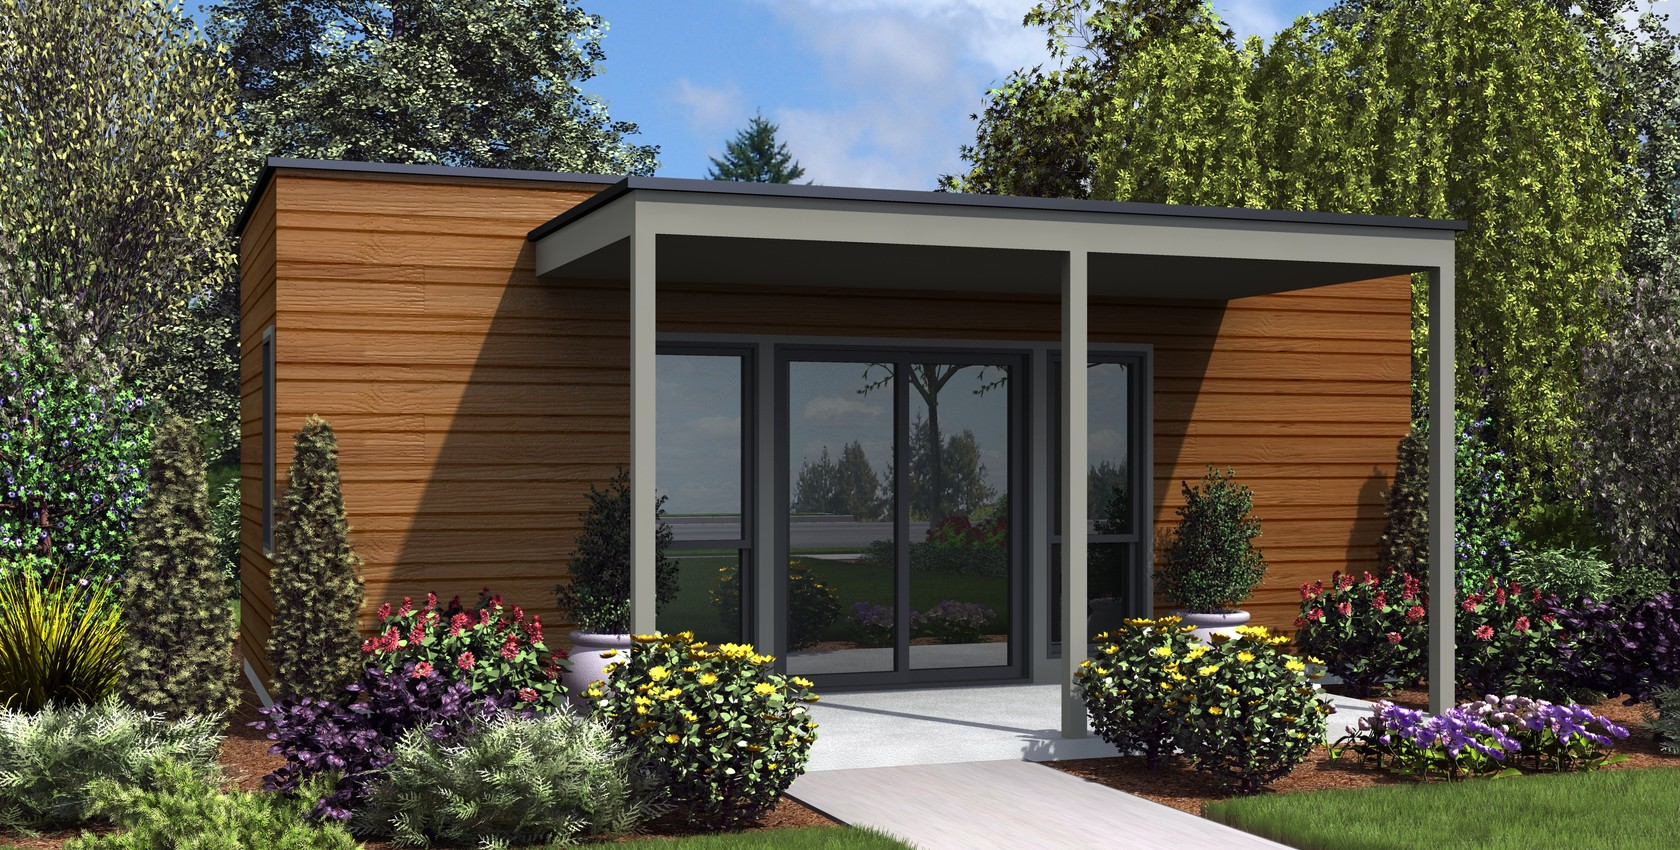 Image for Woodhaven-Efficient Contemporary Guest Suite-8655